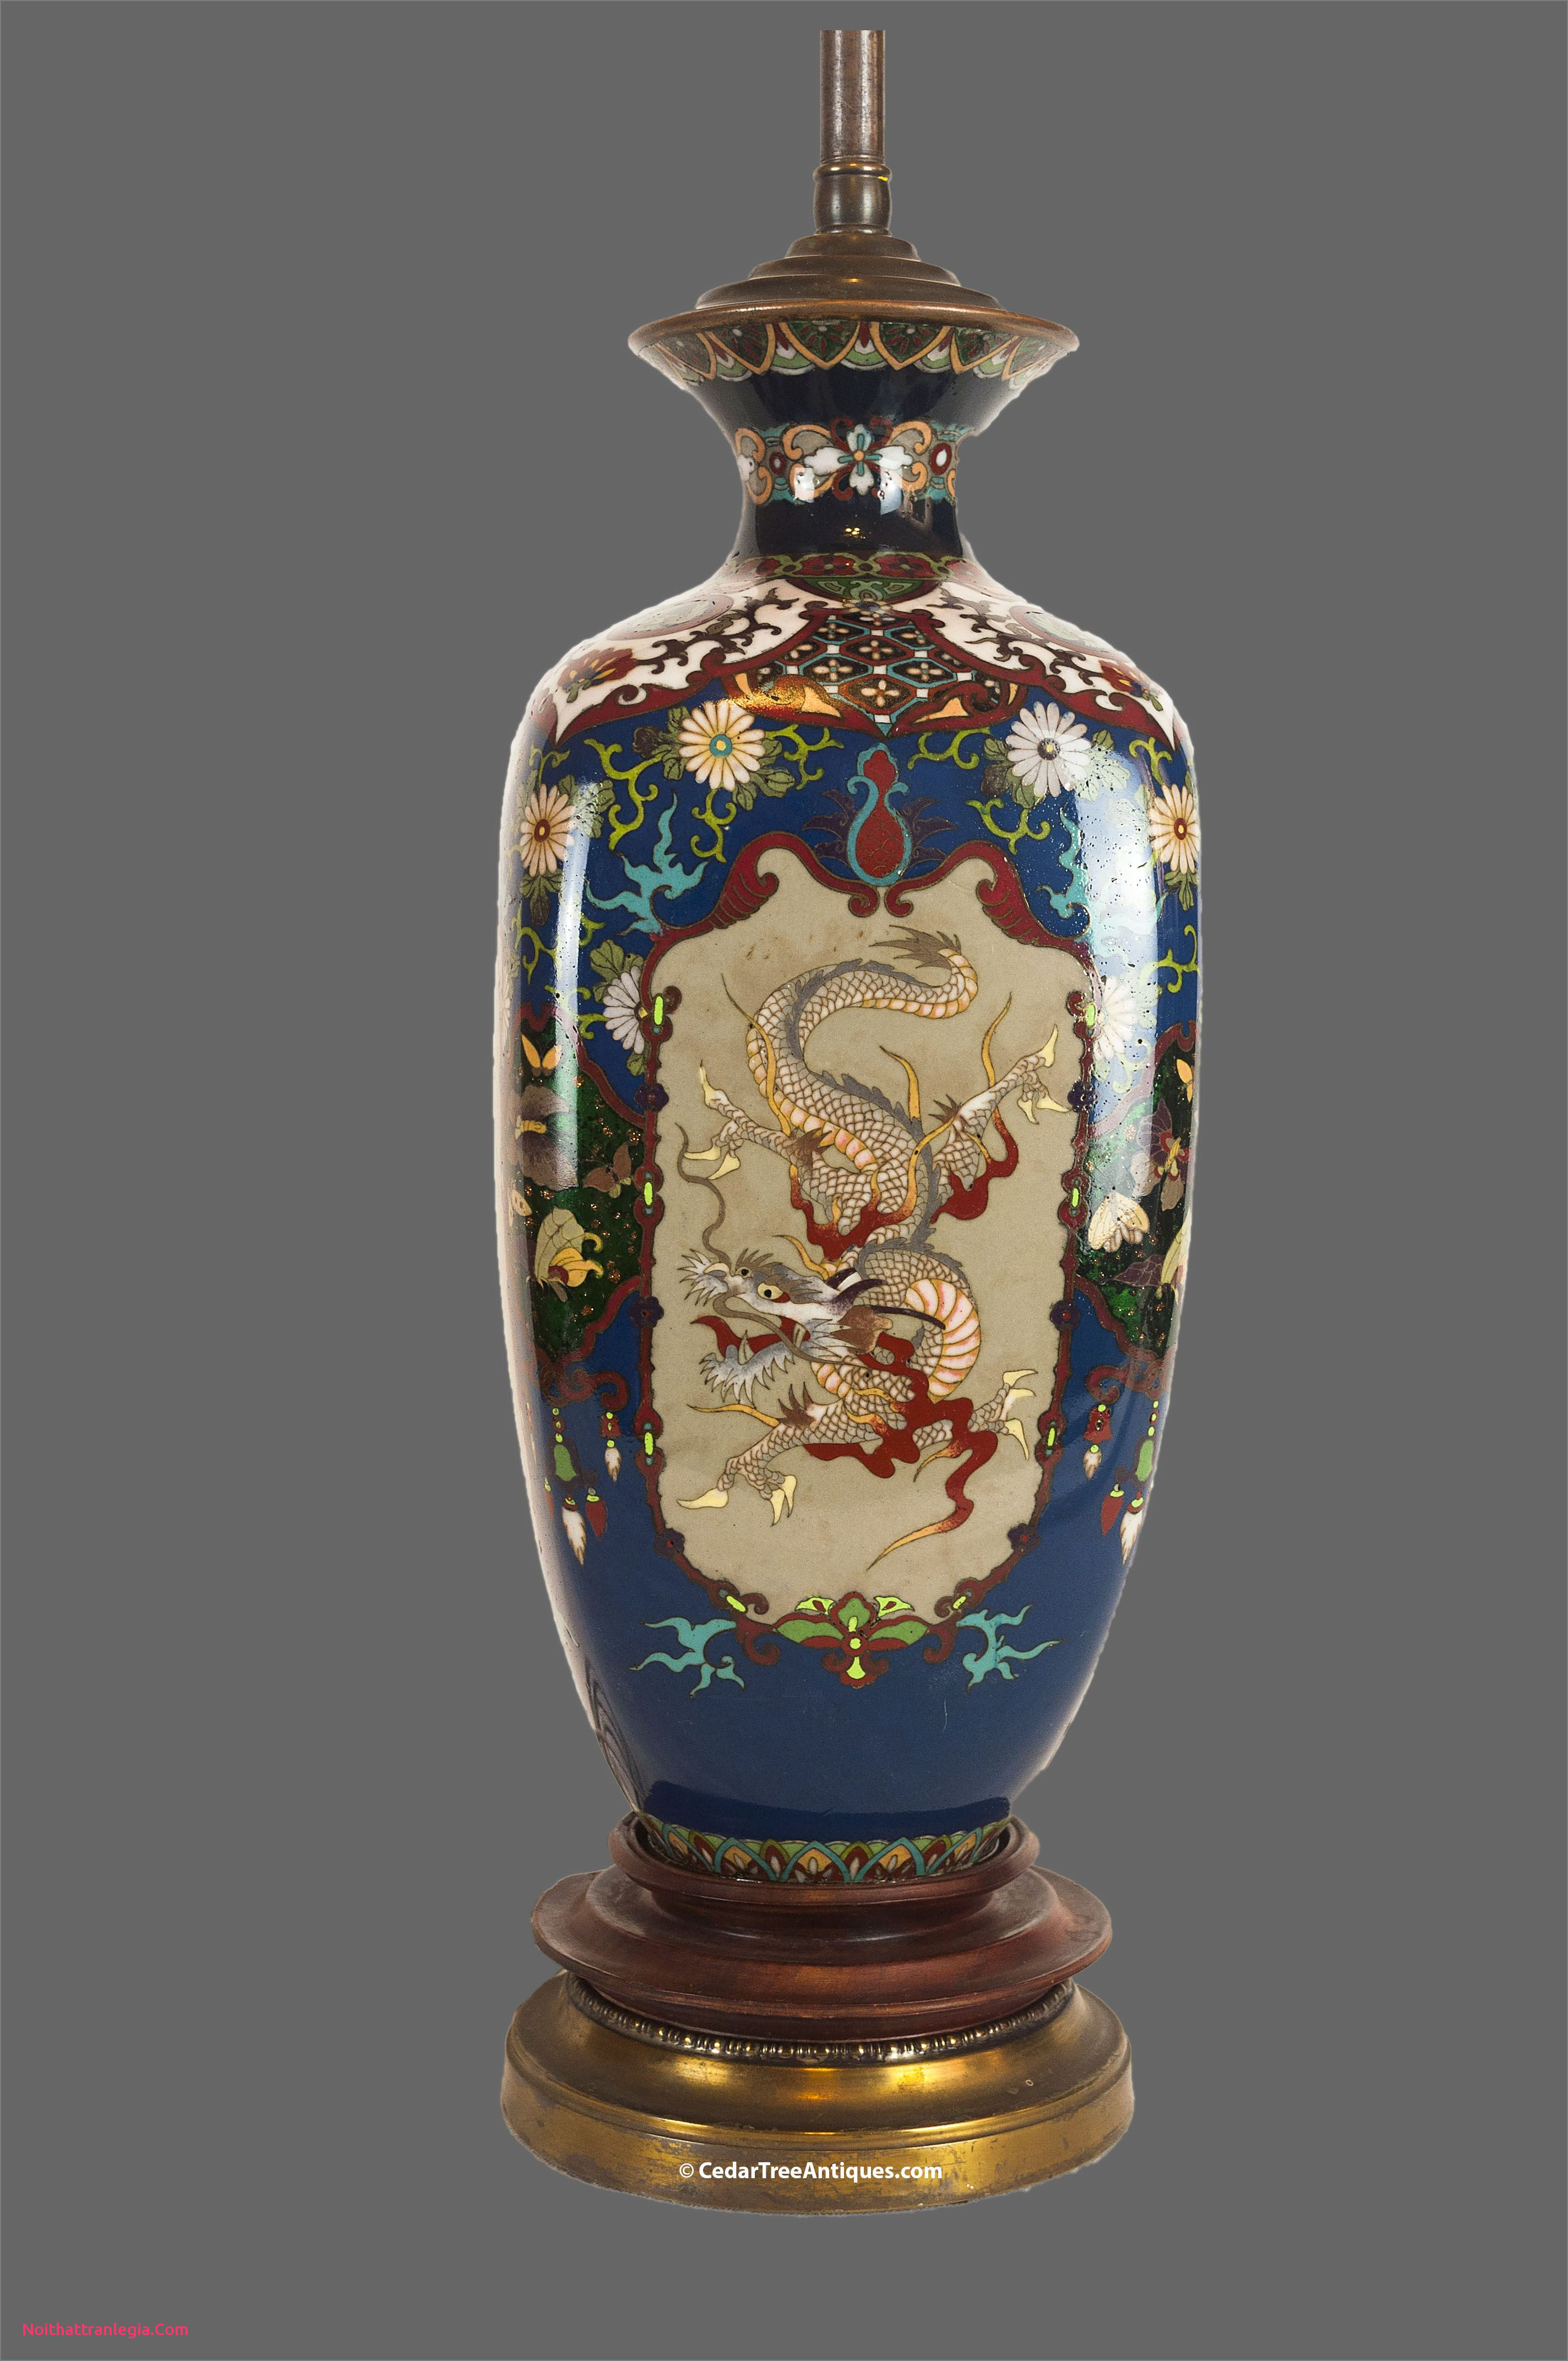 large blue and white vase of 20 chinese antique vase noithattranlegia vases design in japanese meiji period cloissone dragon vase mounted as a lamp